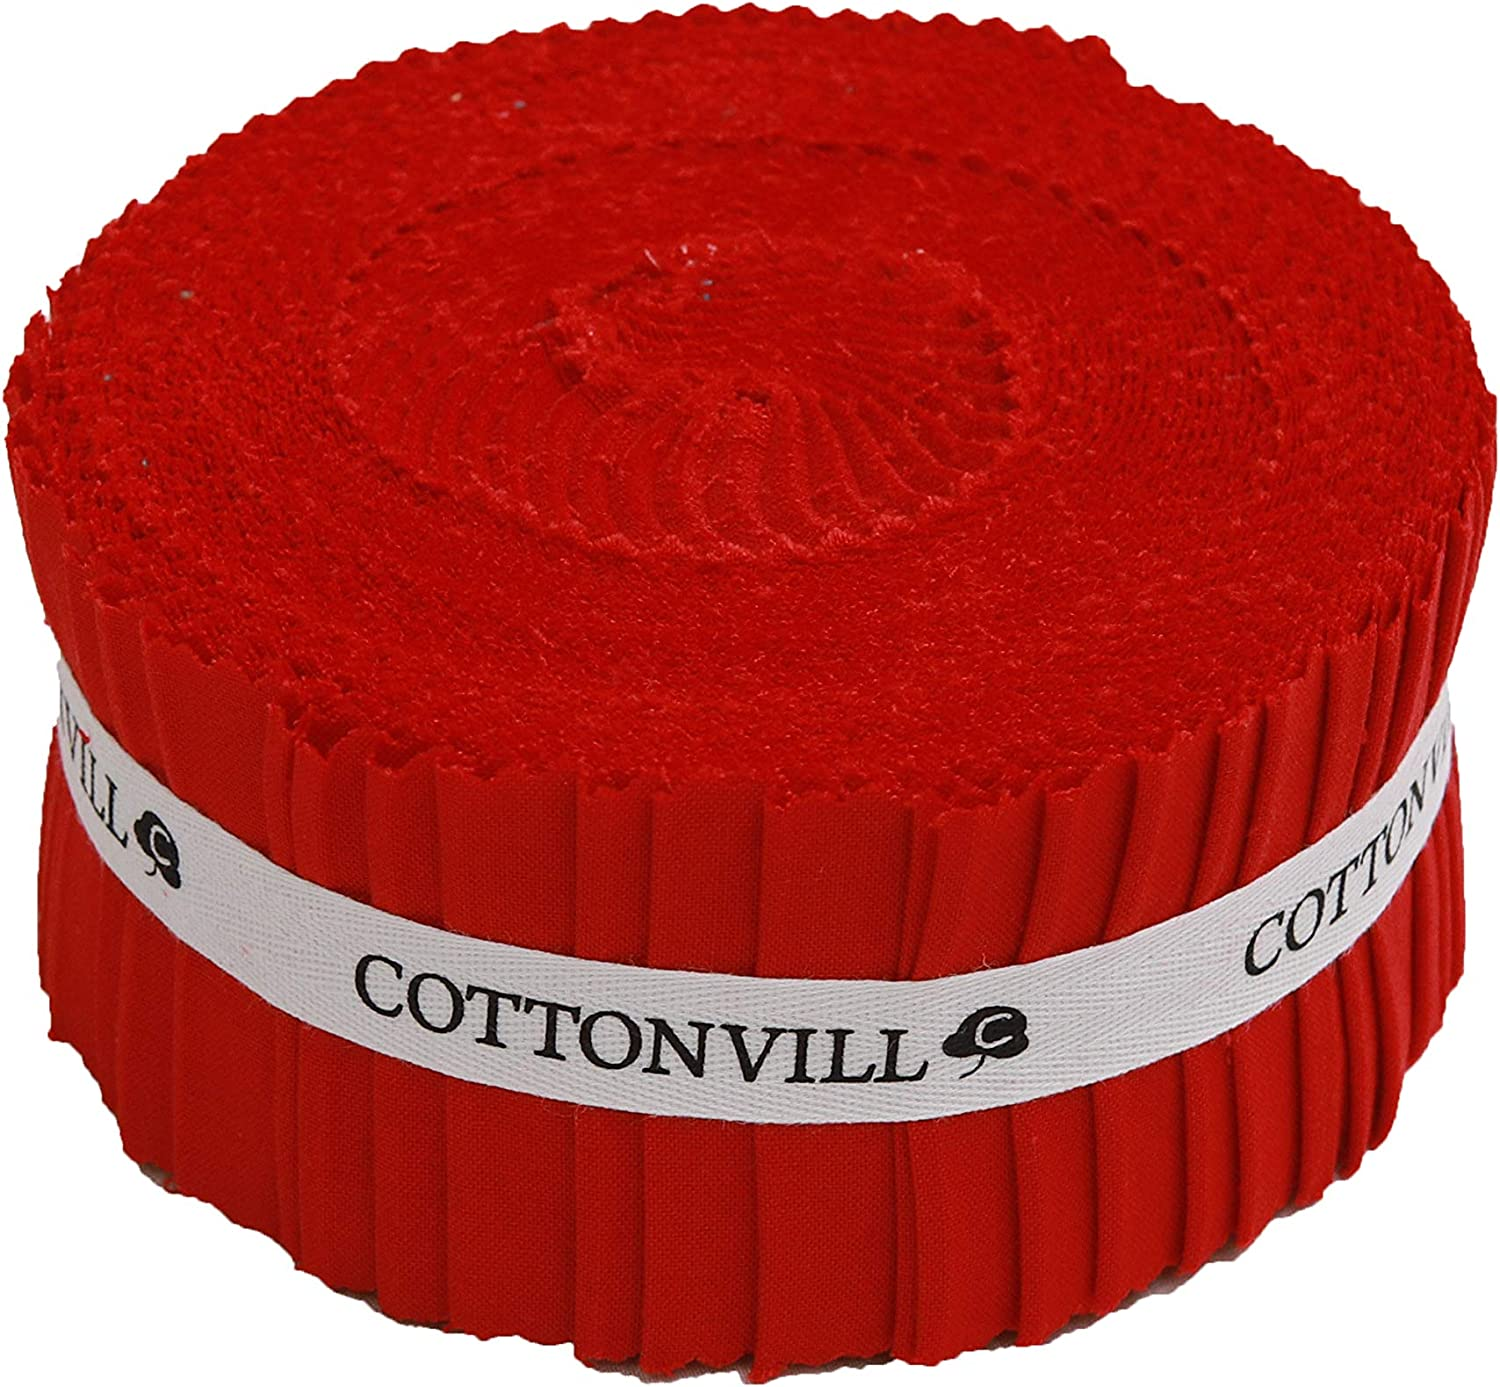 COTTONVILL 20COUNT Cheap mail order Austin Mall specialty store Cotton Solid Fabric Strip Quilting 2.5inch